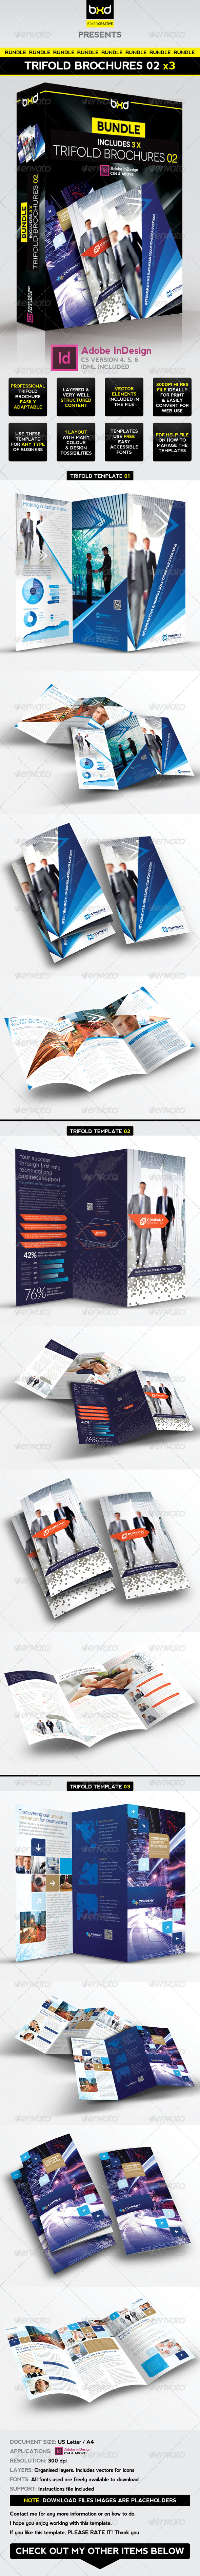 Trifold Brochures Bundle - InDesign Layout 02 - Corporate Brochures